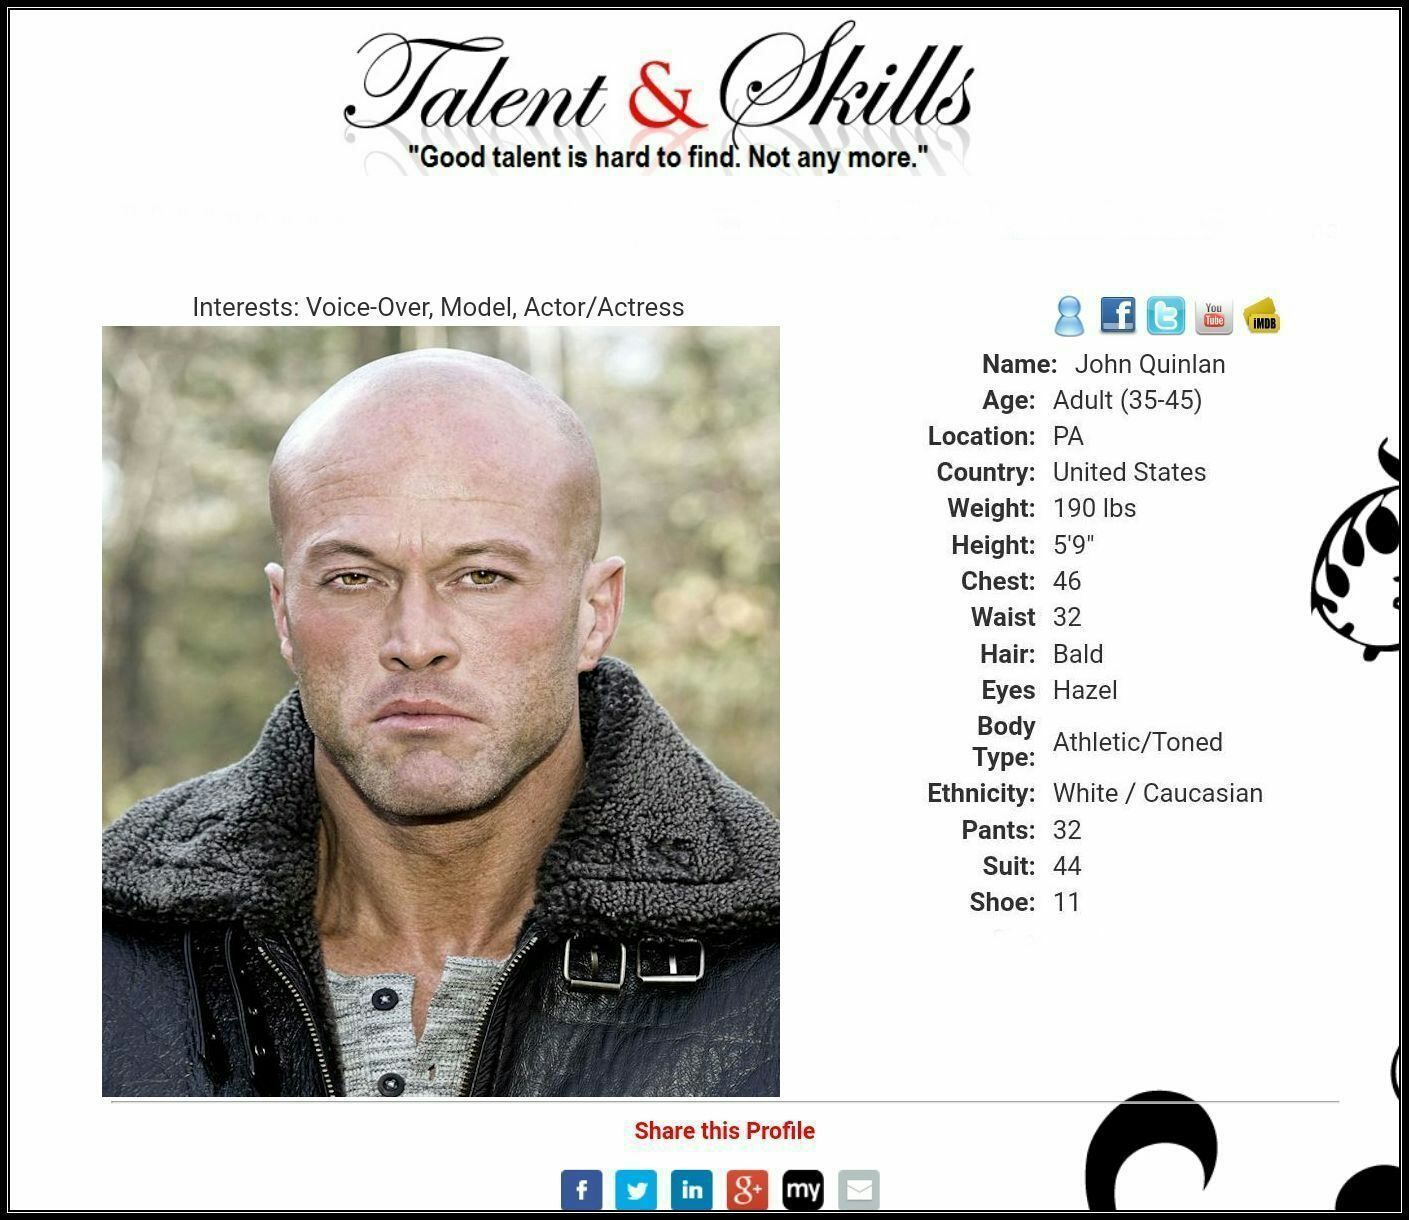 Model Actor John Quinlan Talent & Skills Profile #JohnQuinlan